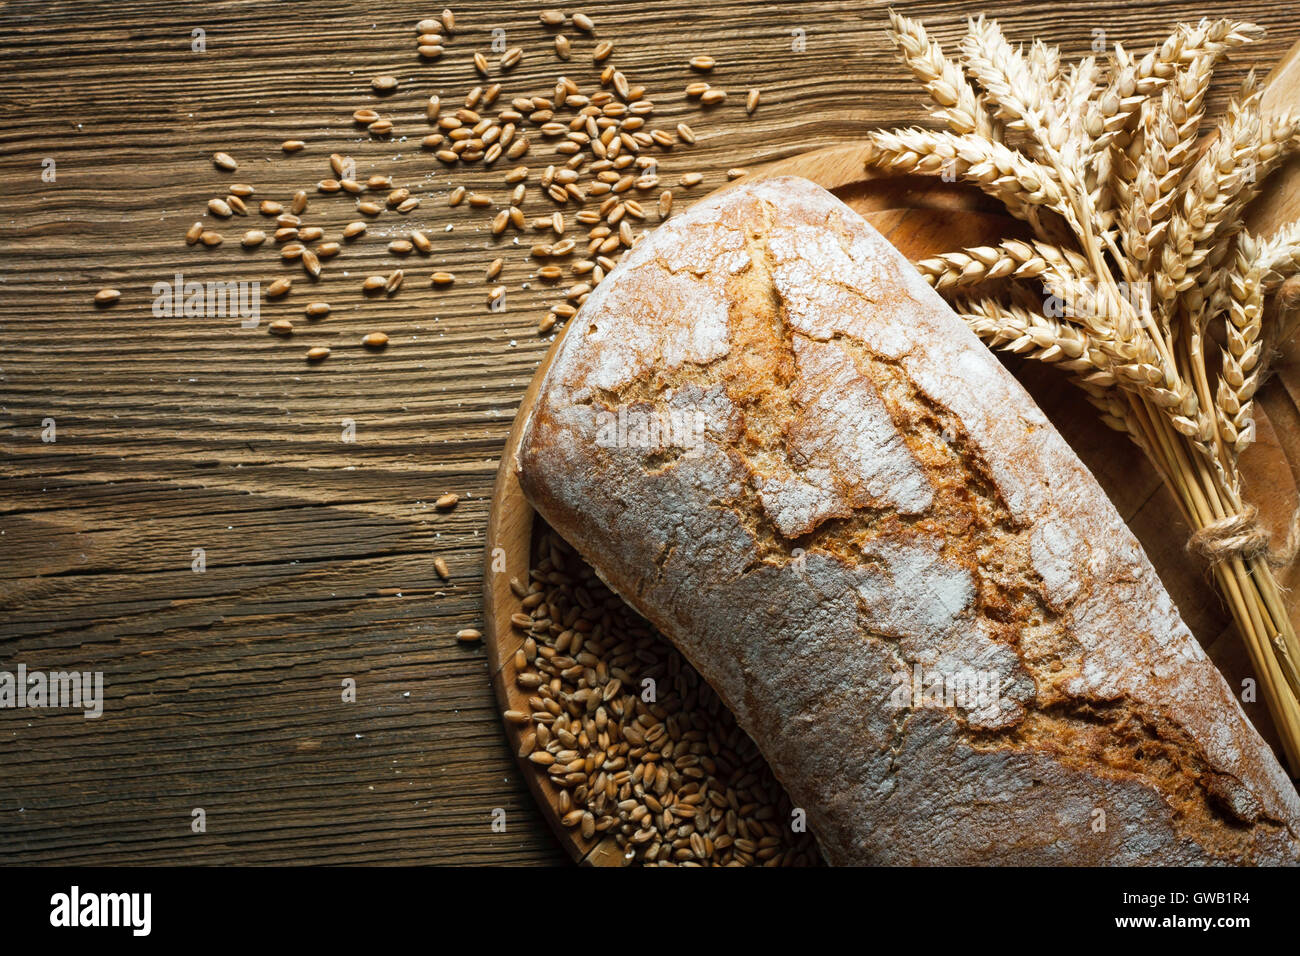 Homemade loaf of bread on wooden table - Stock Image